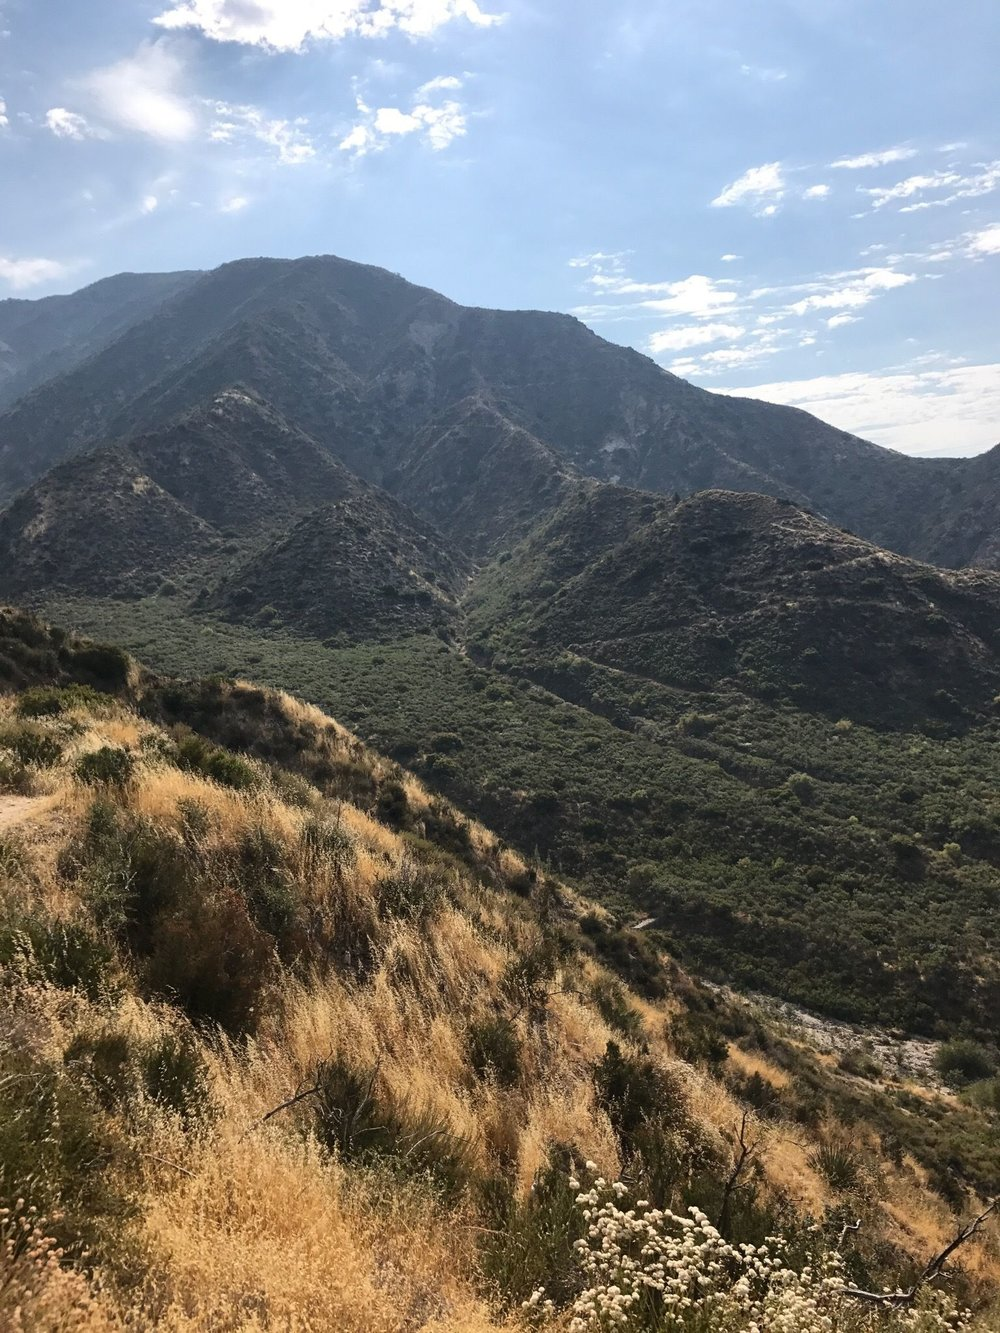 PEAK: Dunsmore Canyon - DIFFICULTY: 3/5SCENERY: Plenty of rolling California mountains, complete with wildflowers, desert vibes, and streams. FUN FACT: Our trail is kept fresh and clean by the Glendale Parks and Open Space Foundation, whose mission is to provide plenty of parks and trails for the public to enjoy!